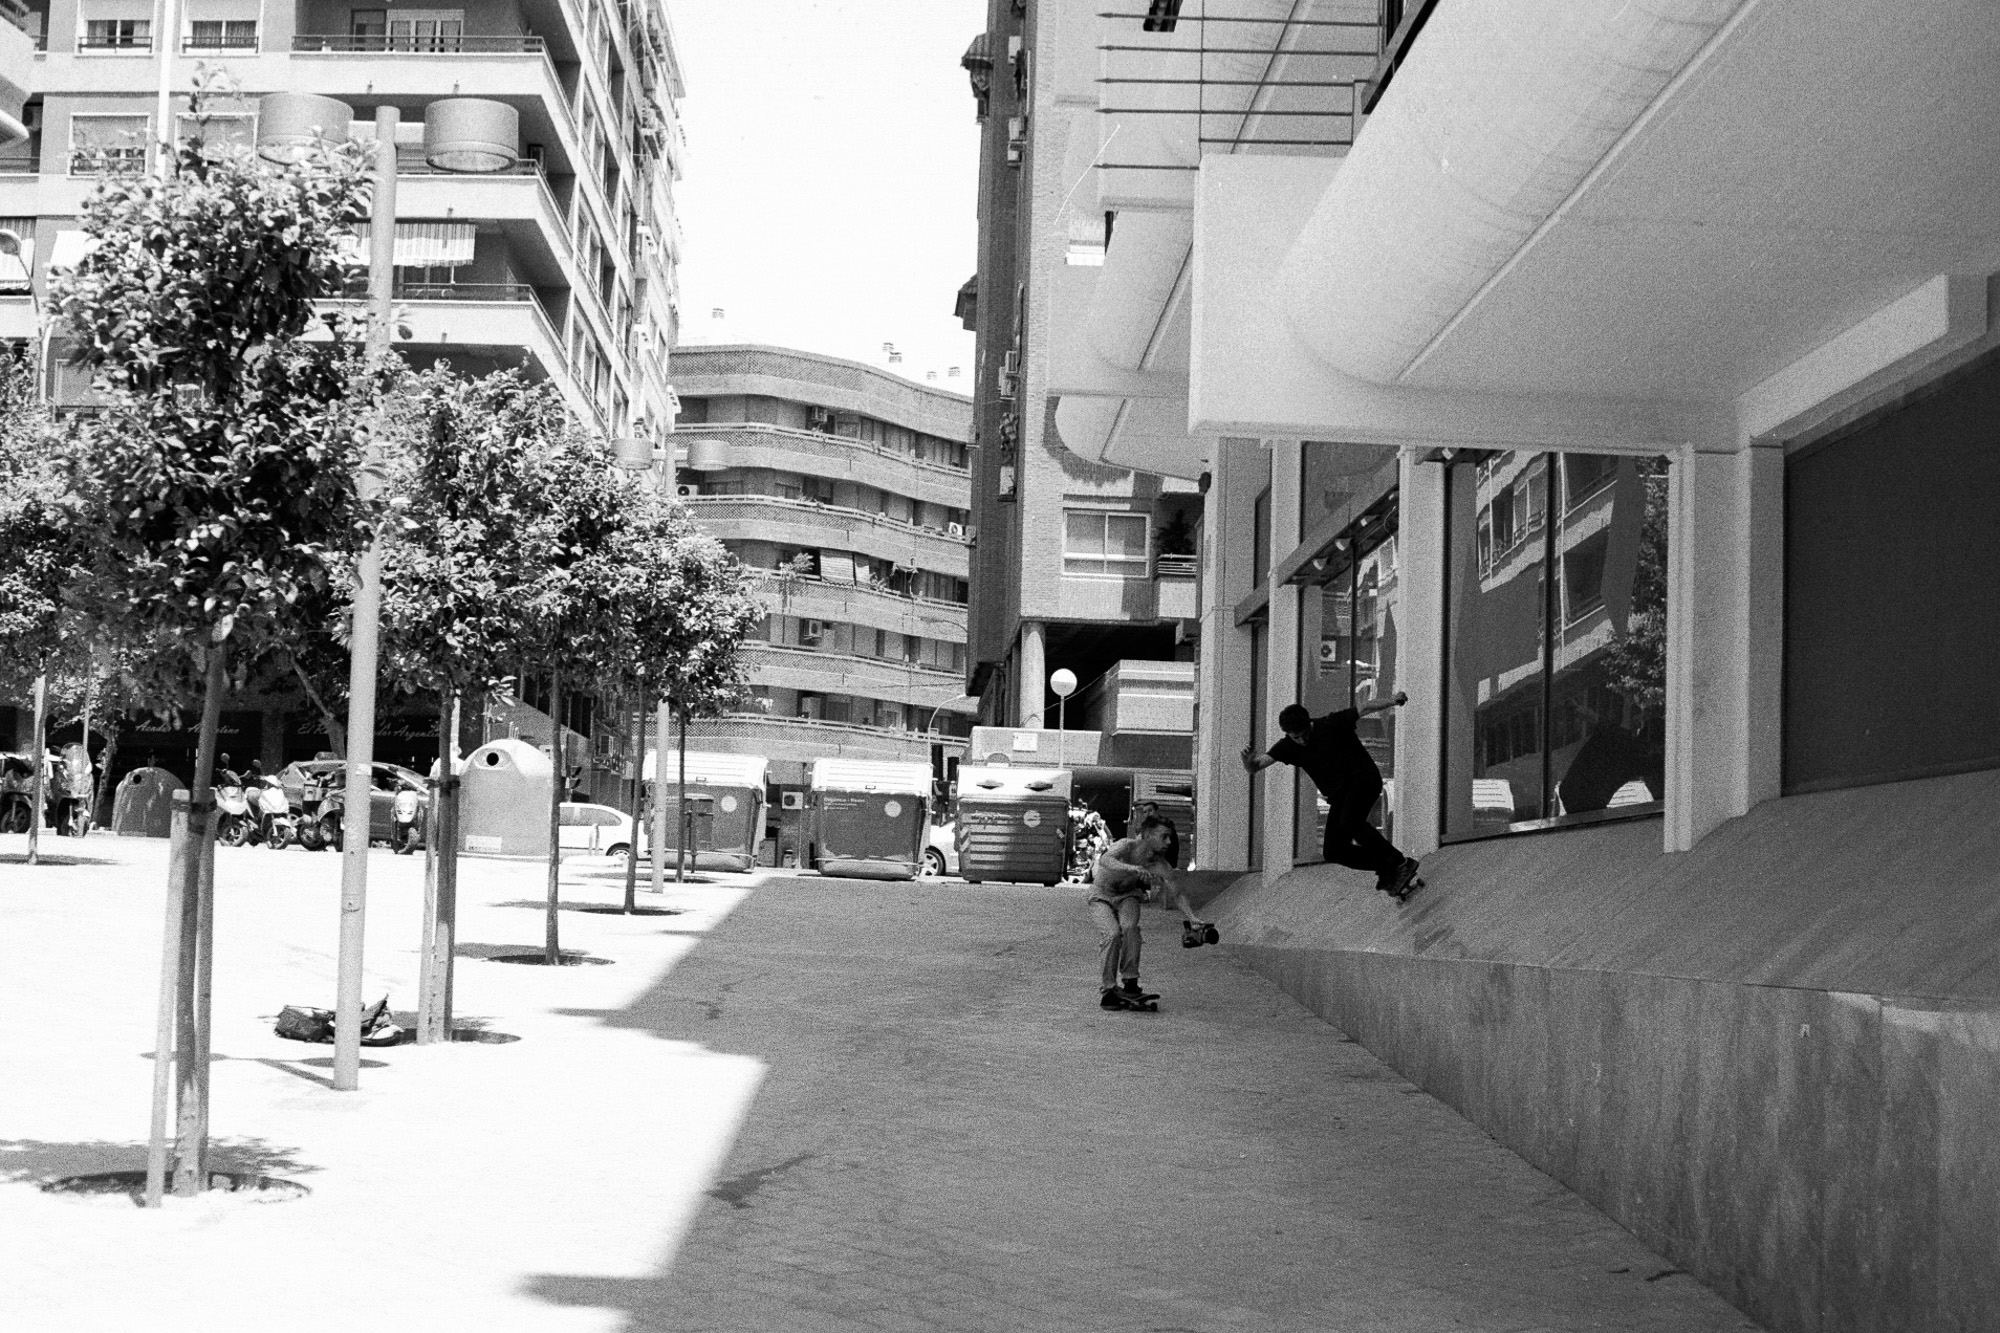 matty-skateboarding-alicante.jpg